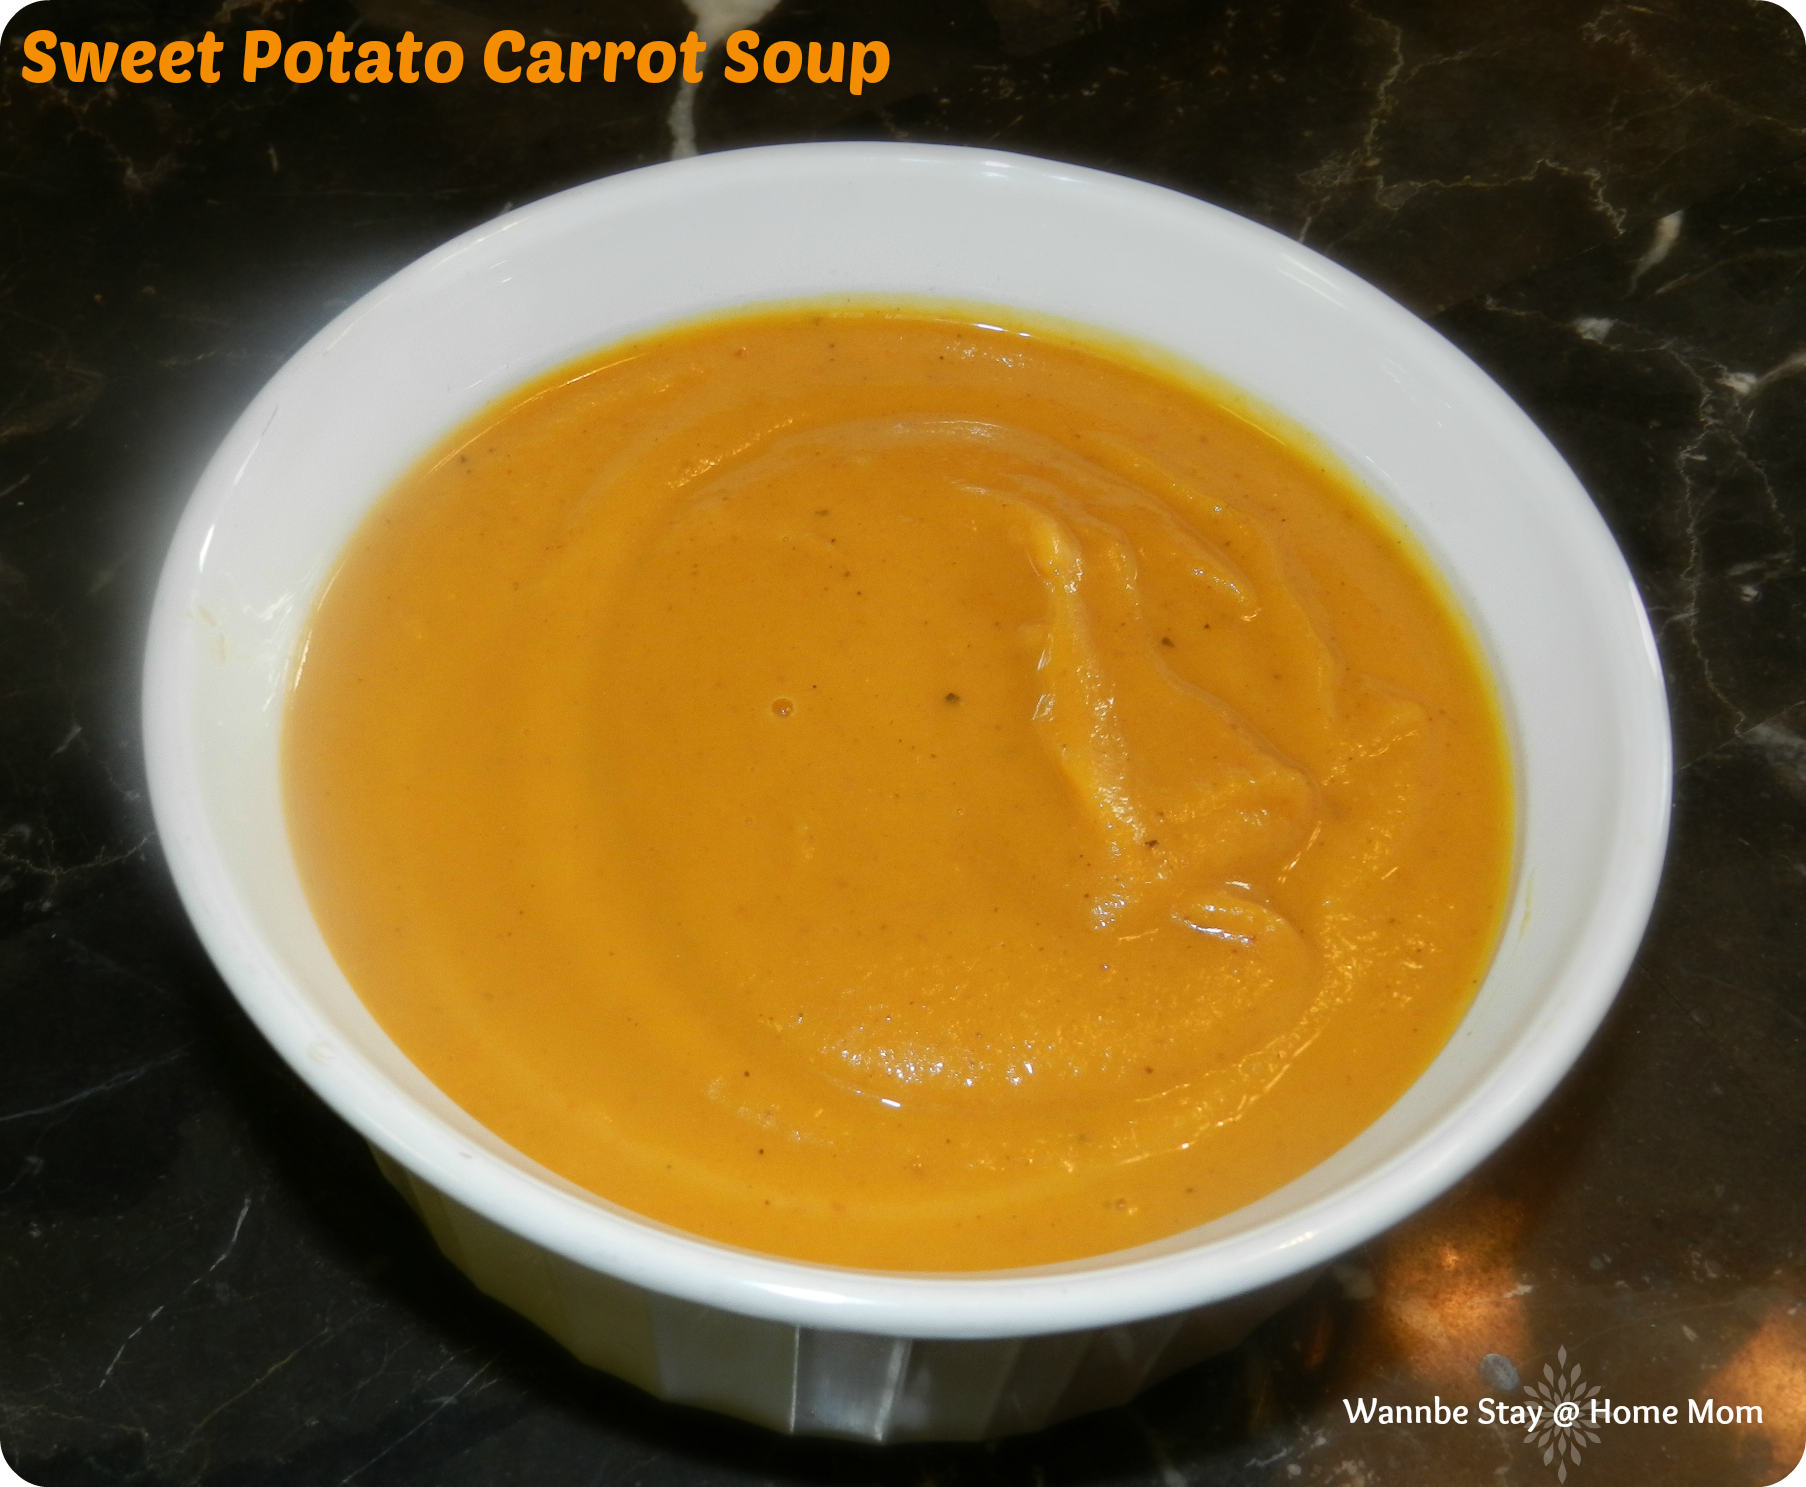 Sweet Potato Carrot Soup | Wannabe Stay at Home Mom